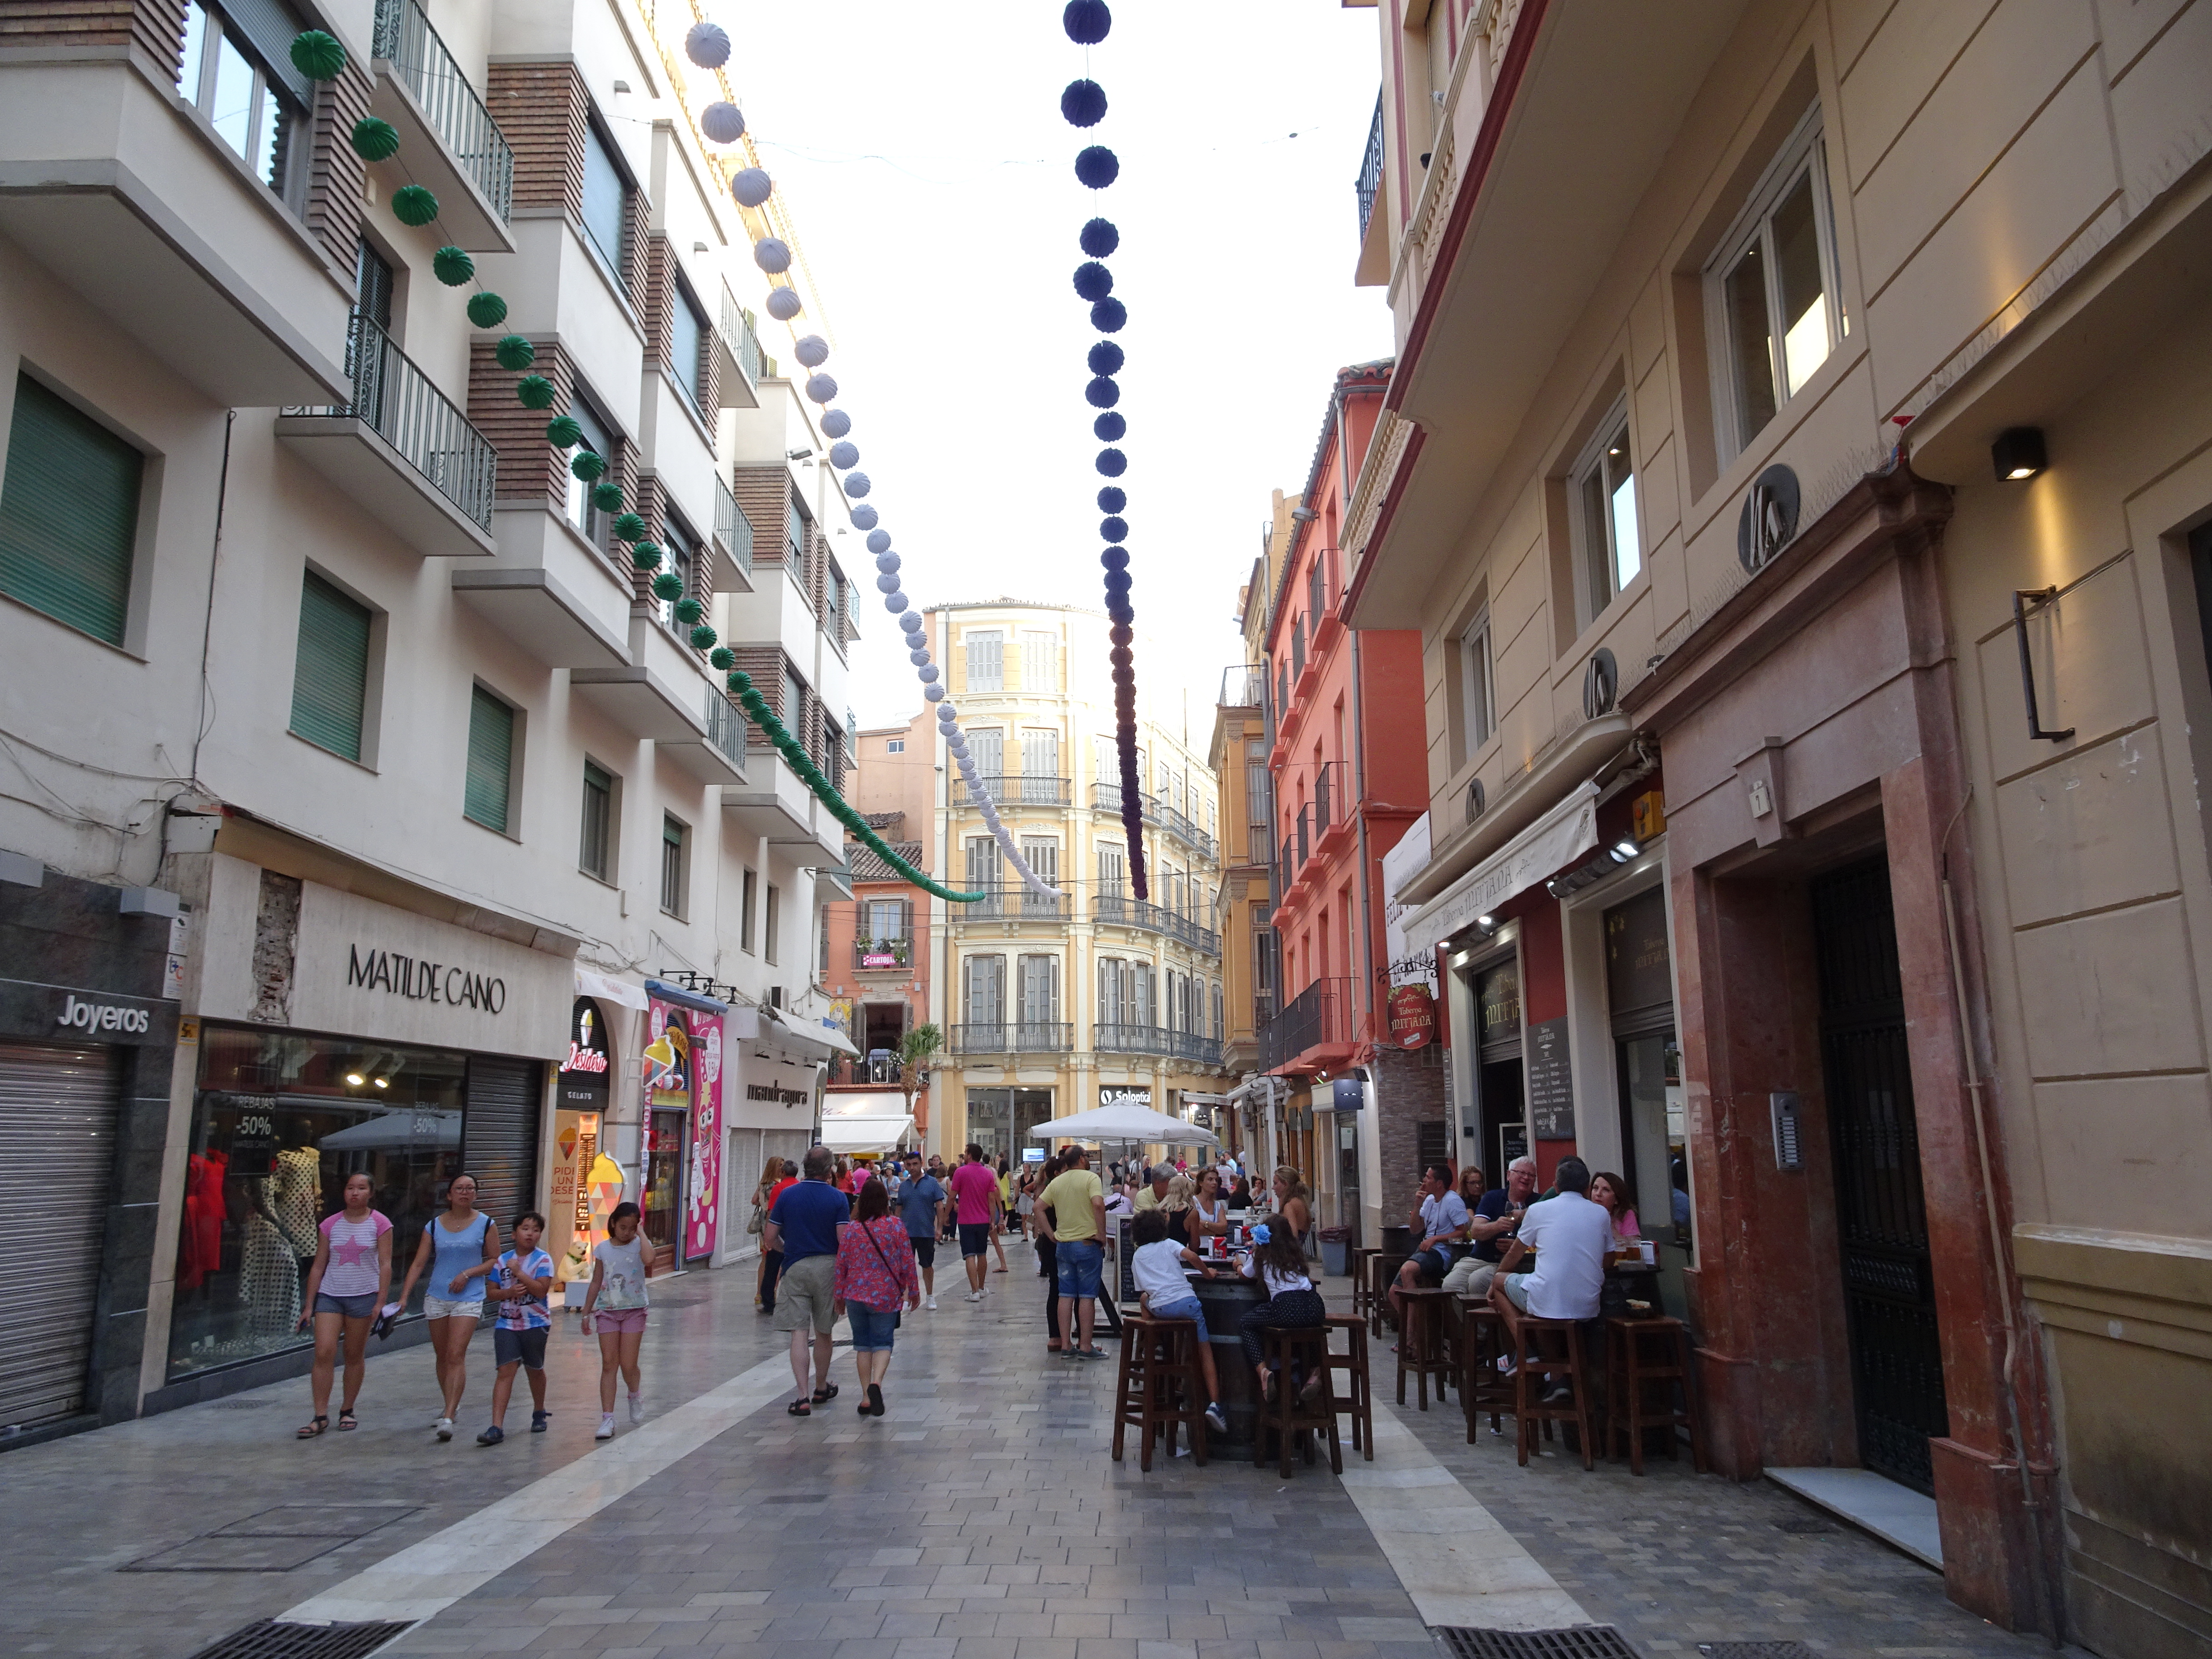 Wander the streets of Malaga old town